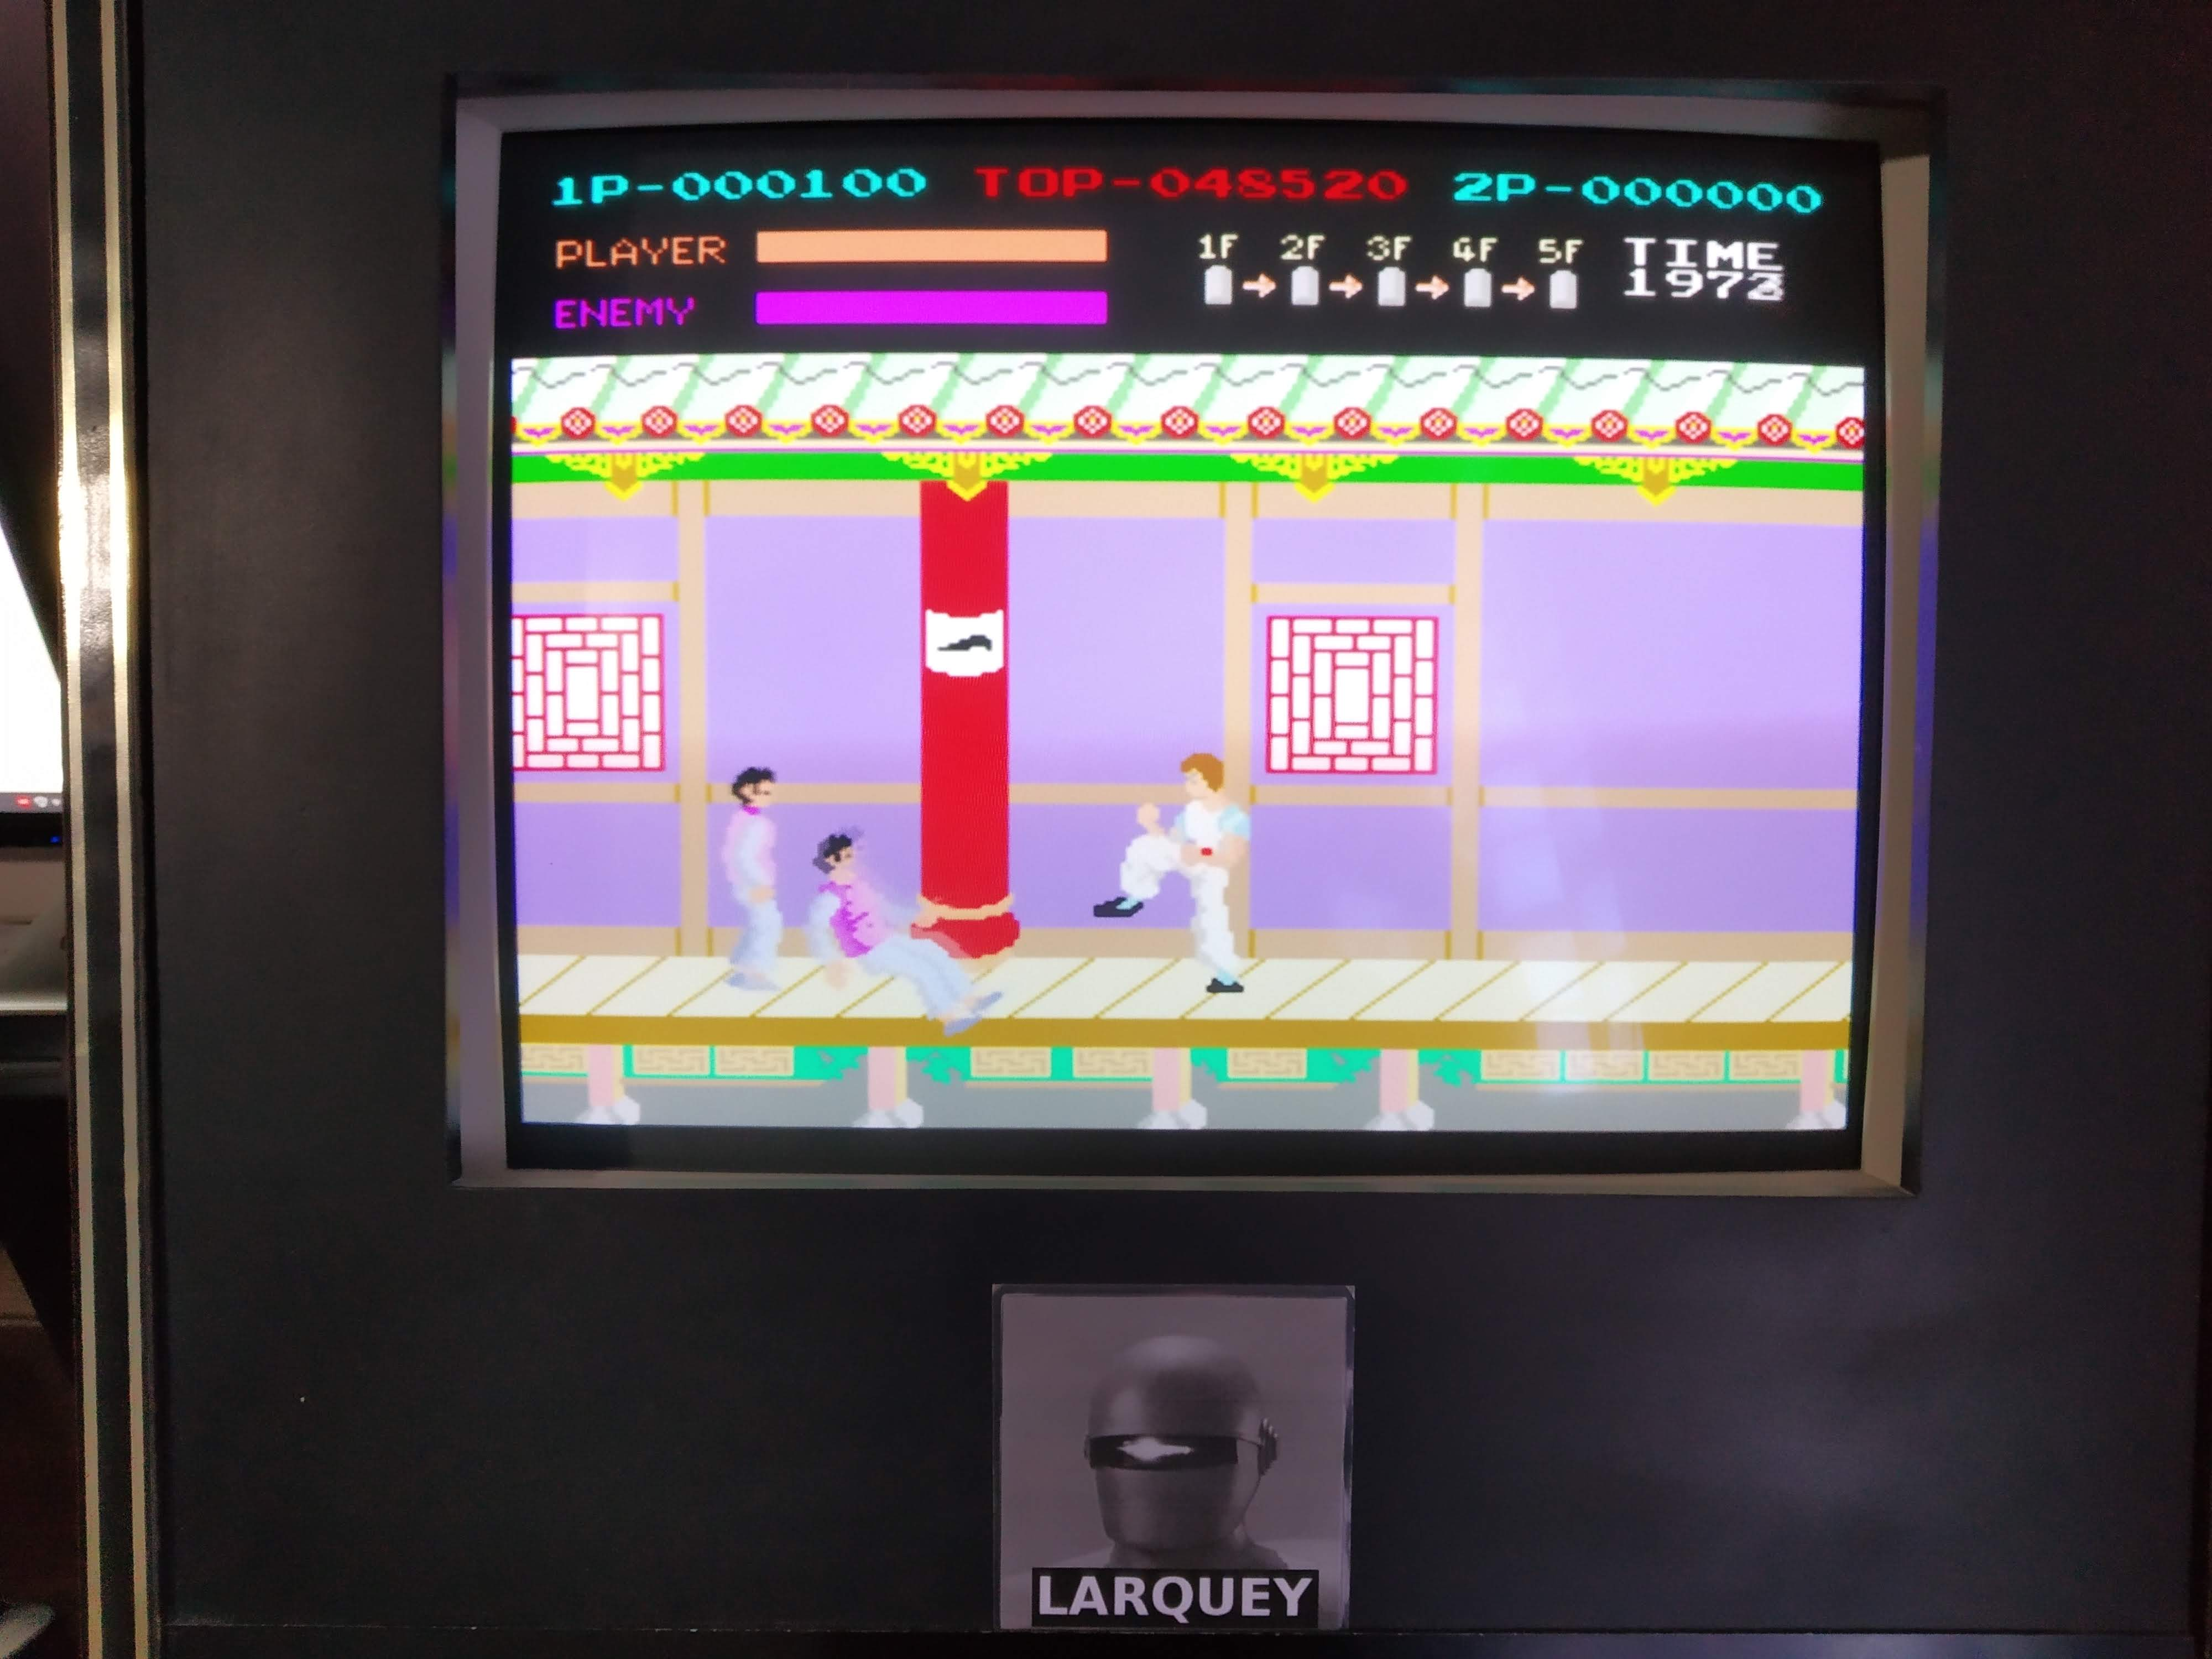 Larquey: Kung Fu Master (Arcade Emulated / M.A.M.E.) 20,700 points on 2019-09-08 12:46:17